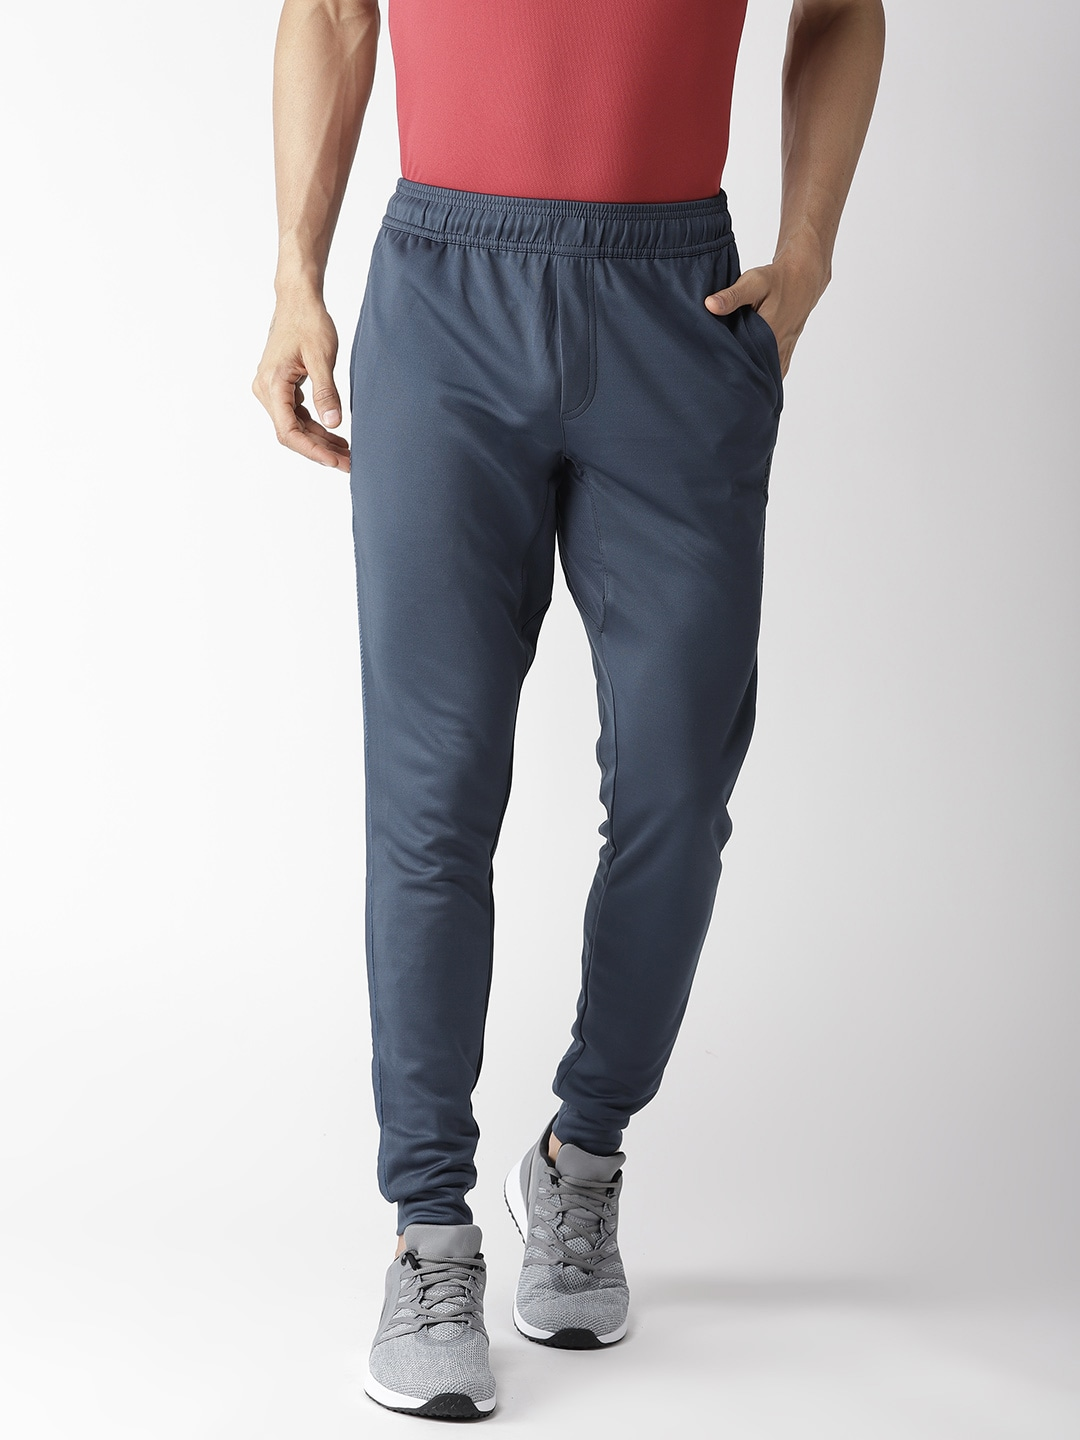 356ef4ee8f8 Joggers - Buy Joggers Pants For Men and Women Online - Myntra